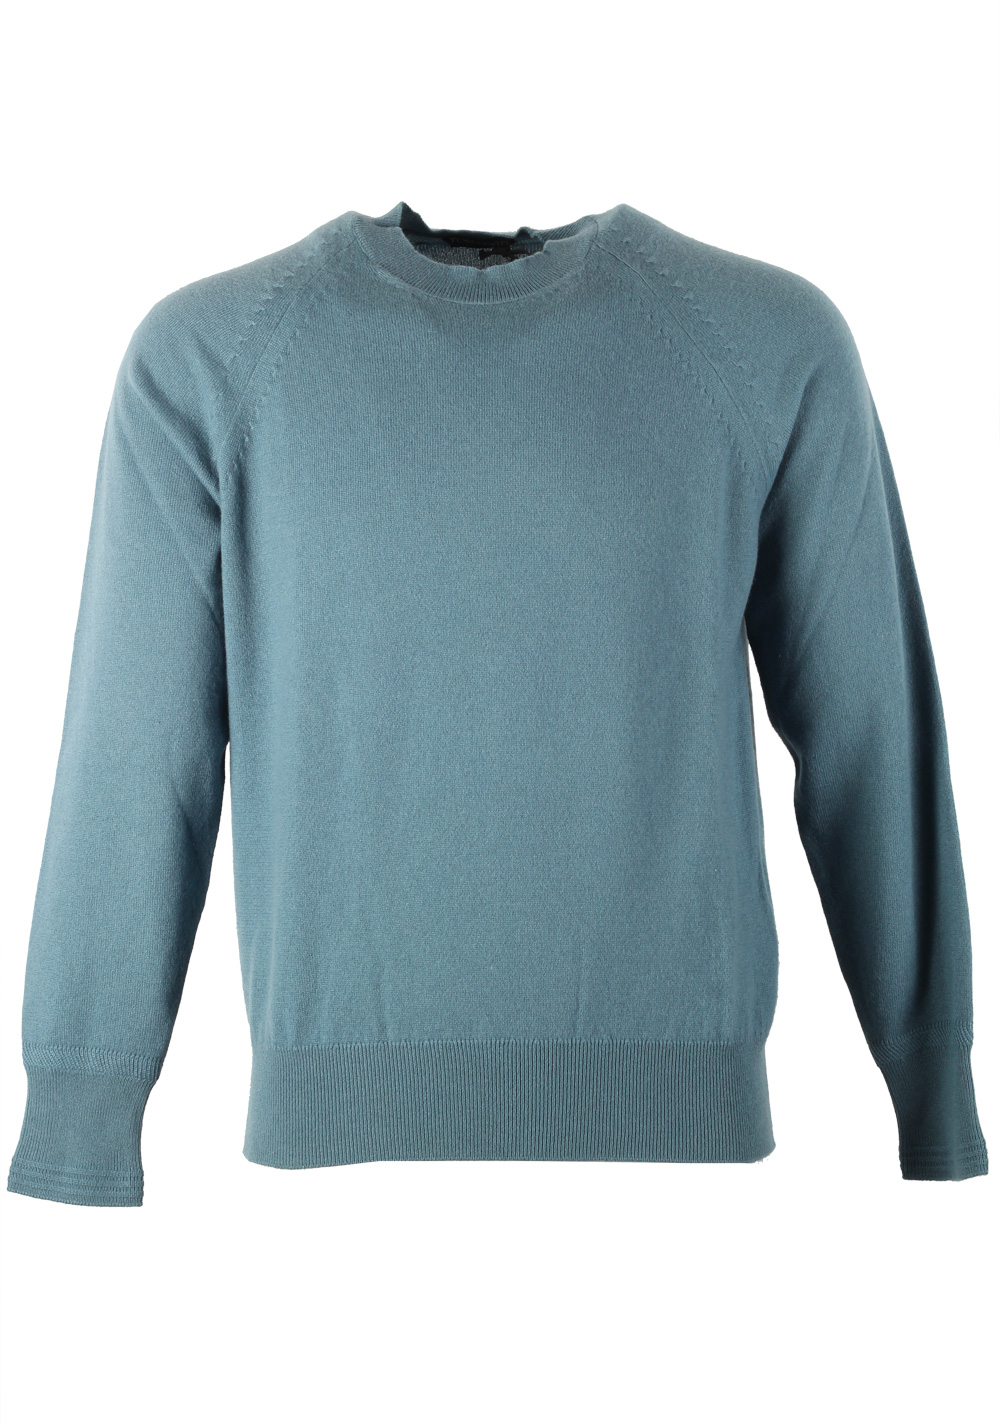 TOM FORD Teal Crew Neck Sweater Size 48 / 38R U.S. In Cashmere | Costume Limité